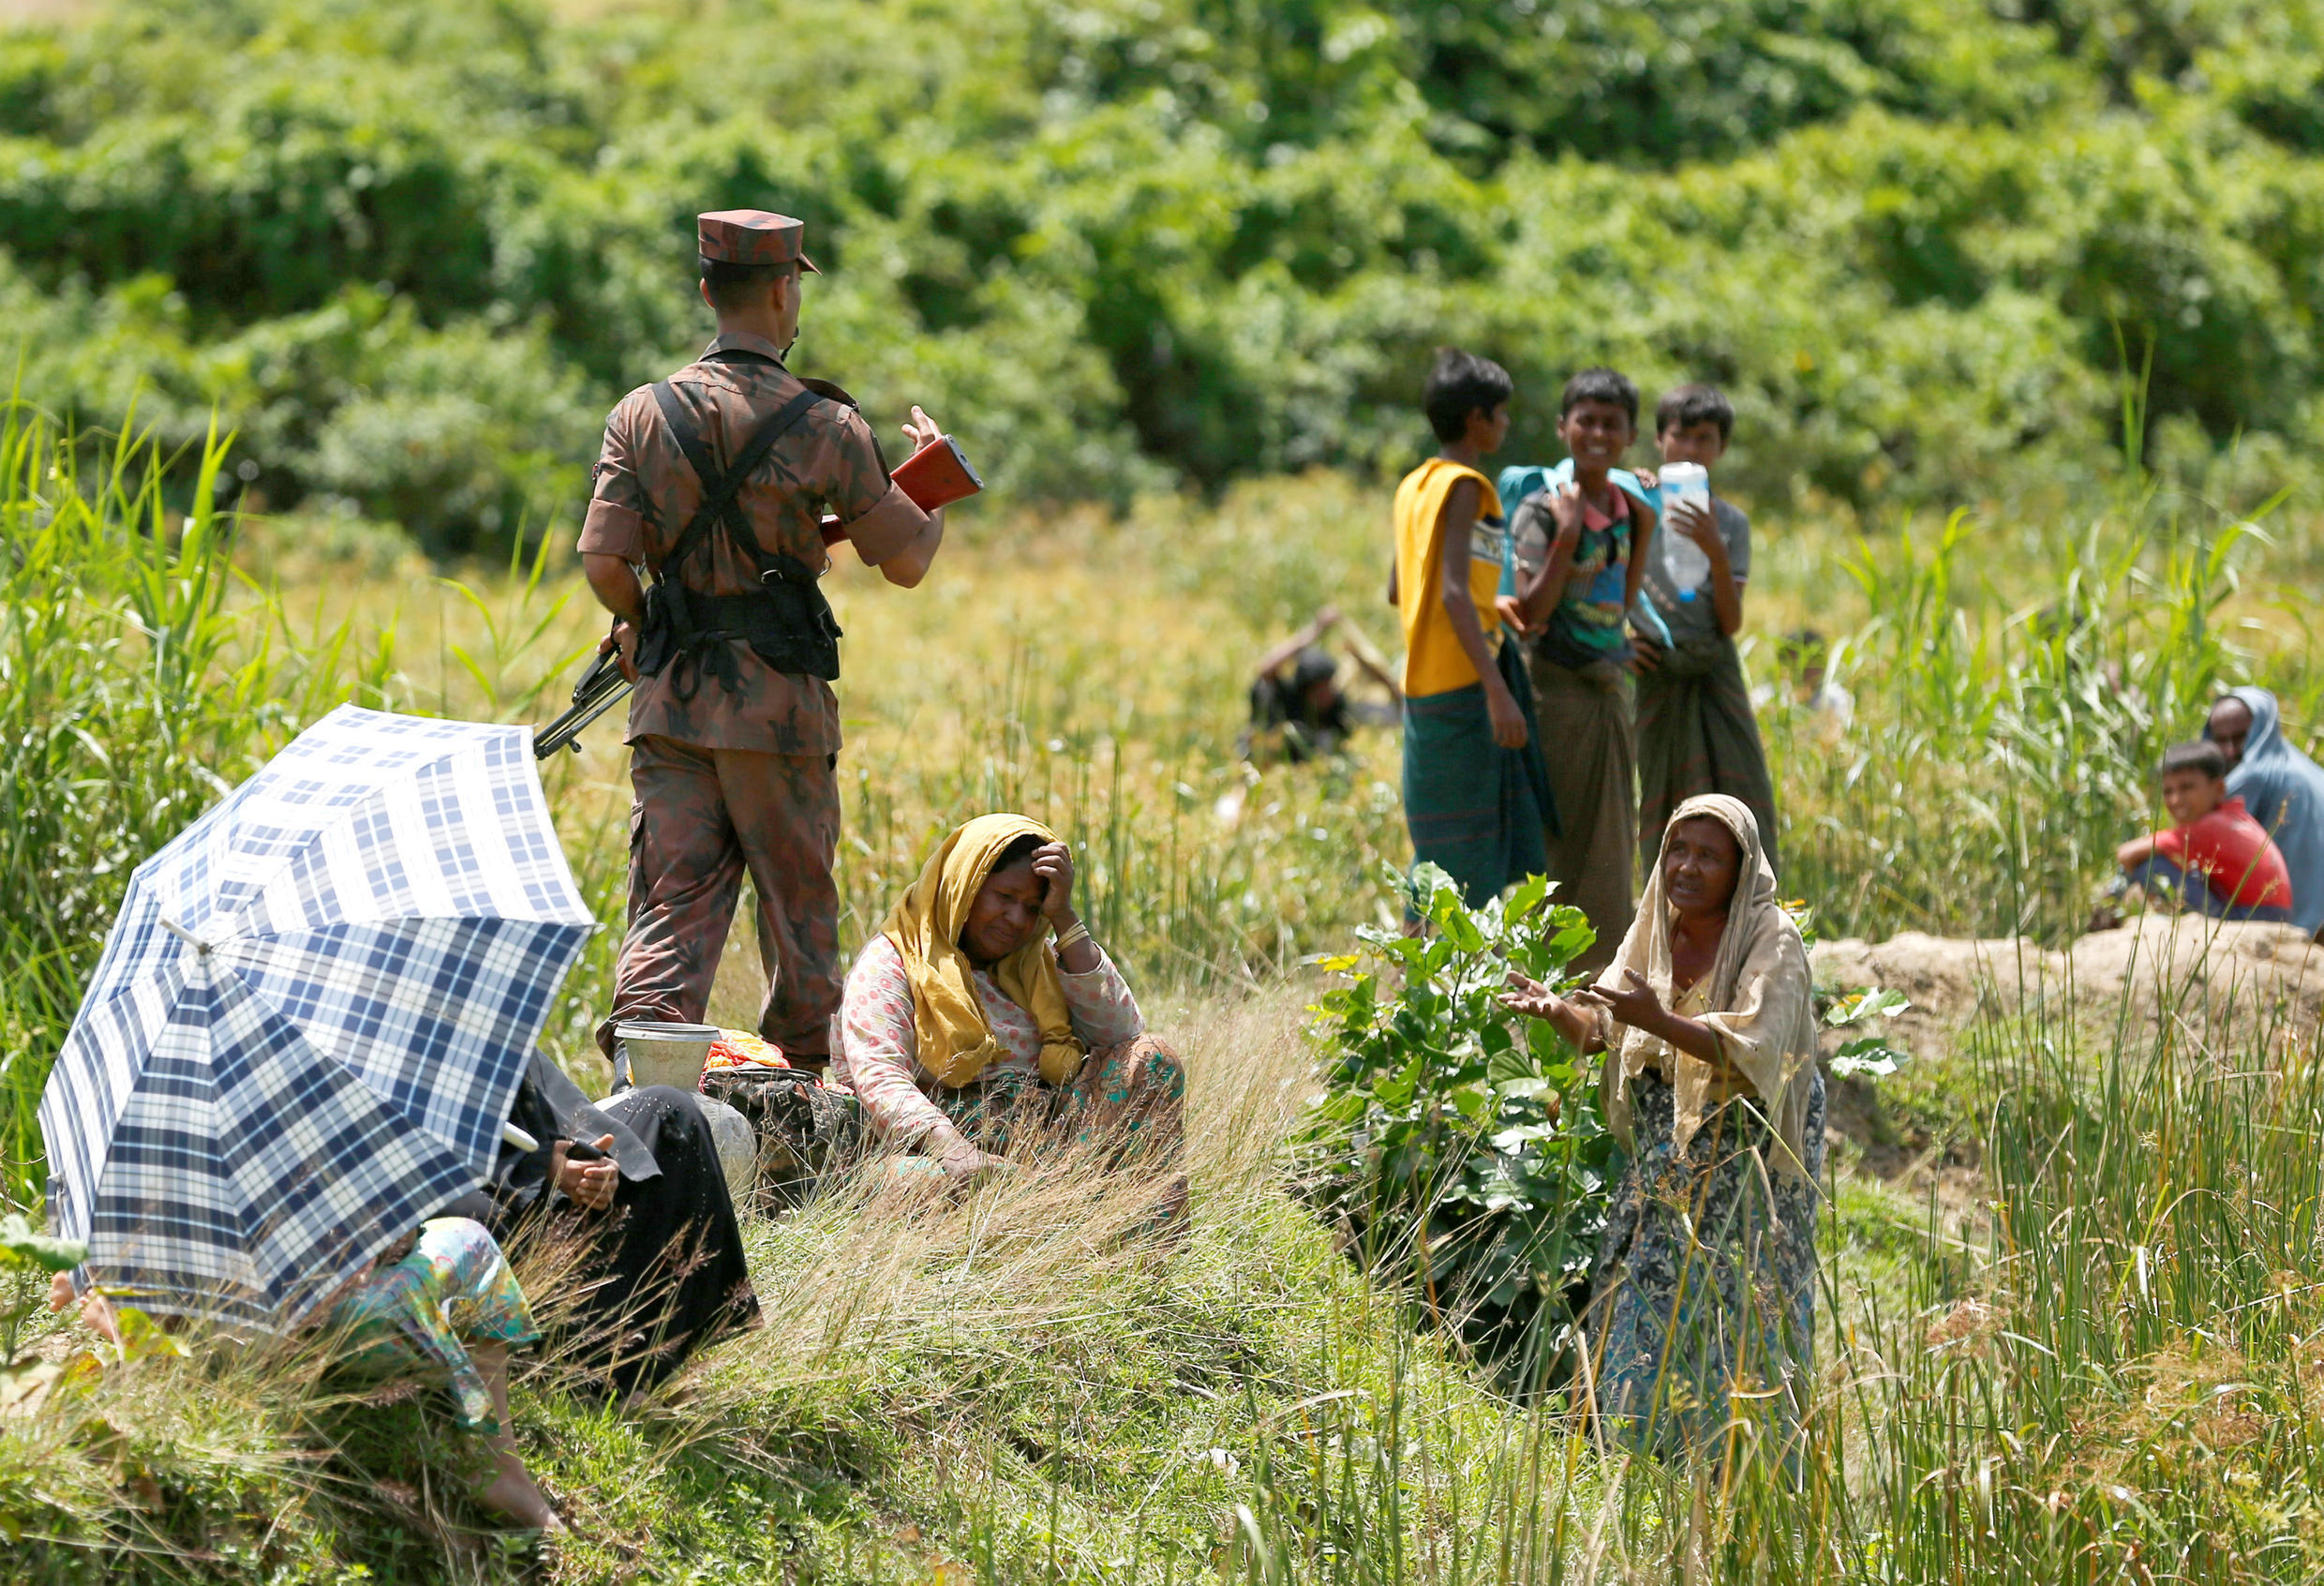 A Rohingya woman urges the member of Border Guard Bangladesh not to turn them back to Myanmar, in Cox's Bazar, Bangladesh, 27 August 2017.